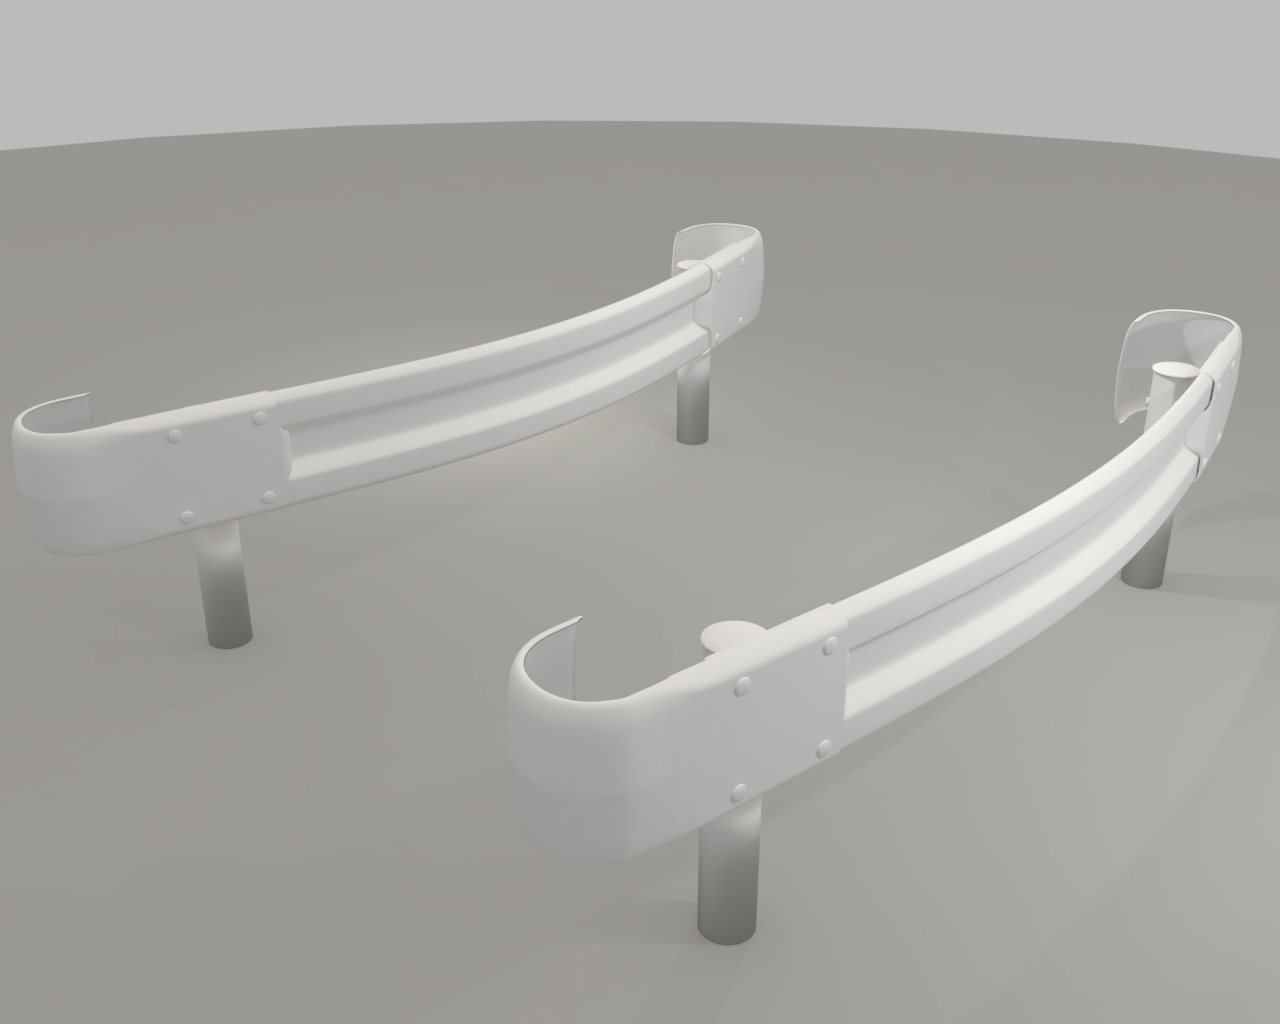 guardrail curved in japan 3d model dxf fbx obj 282235